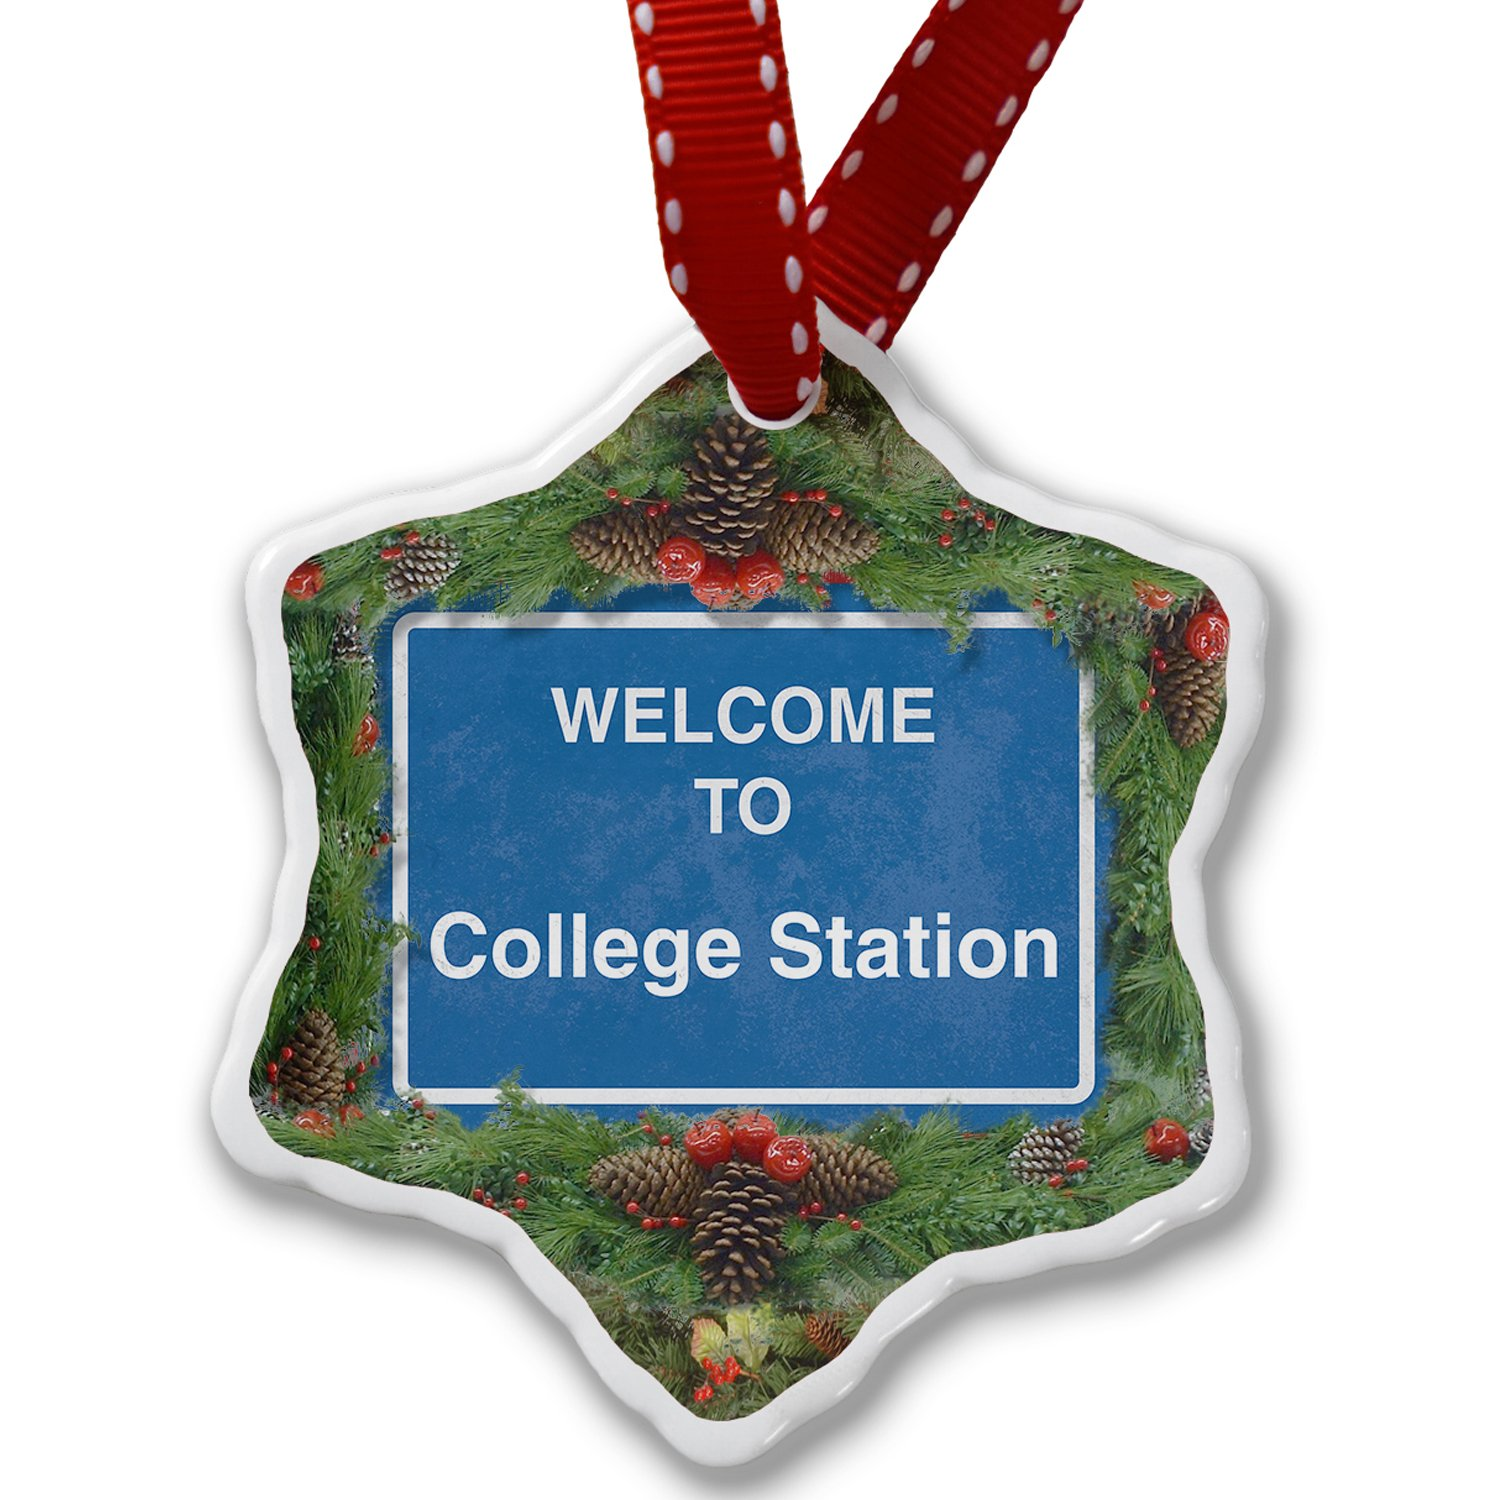 Christmas Ornament Sign Welcome To College Station - Neonblond